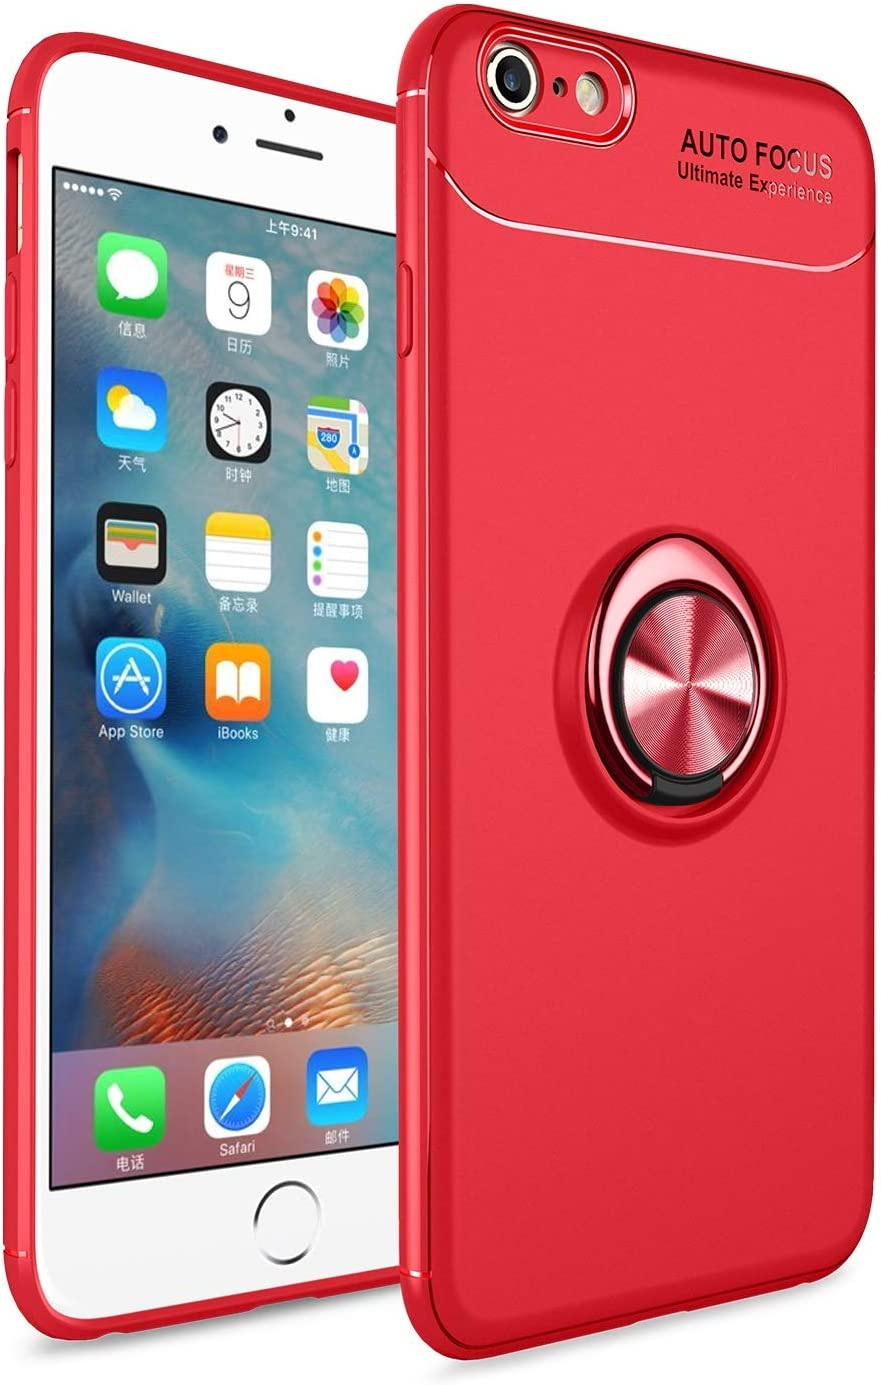 Smartphone Protective Clips For iPhone 6s Plus Case,For iPhone 6 Plus Case Soft TPU Shockproof Case 360 Degrees Rotating Metal Magnetic Ring Kickstand Heat Dissipation Anti-Fall Protective Case Phone